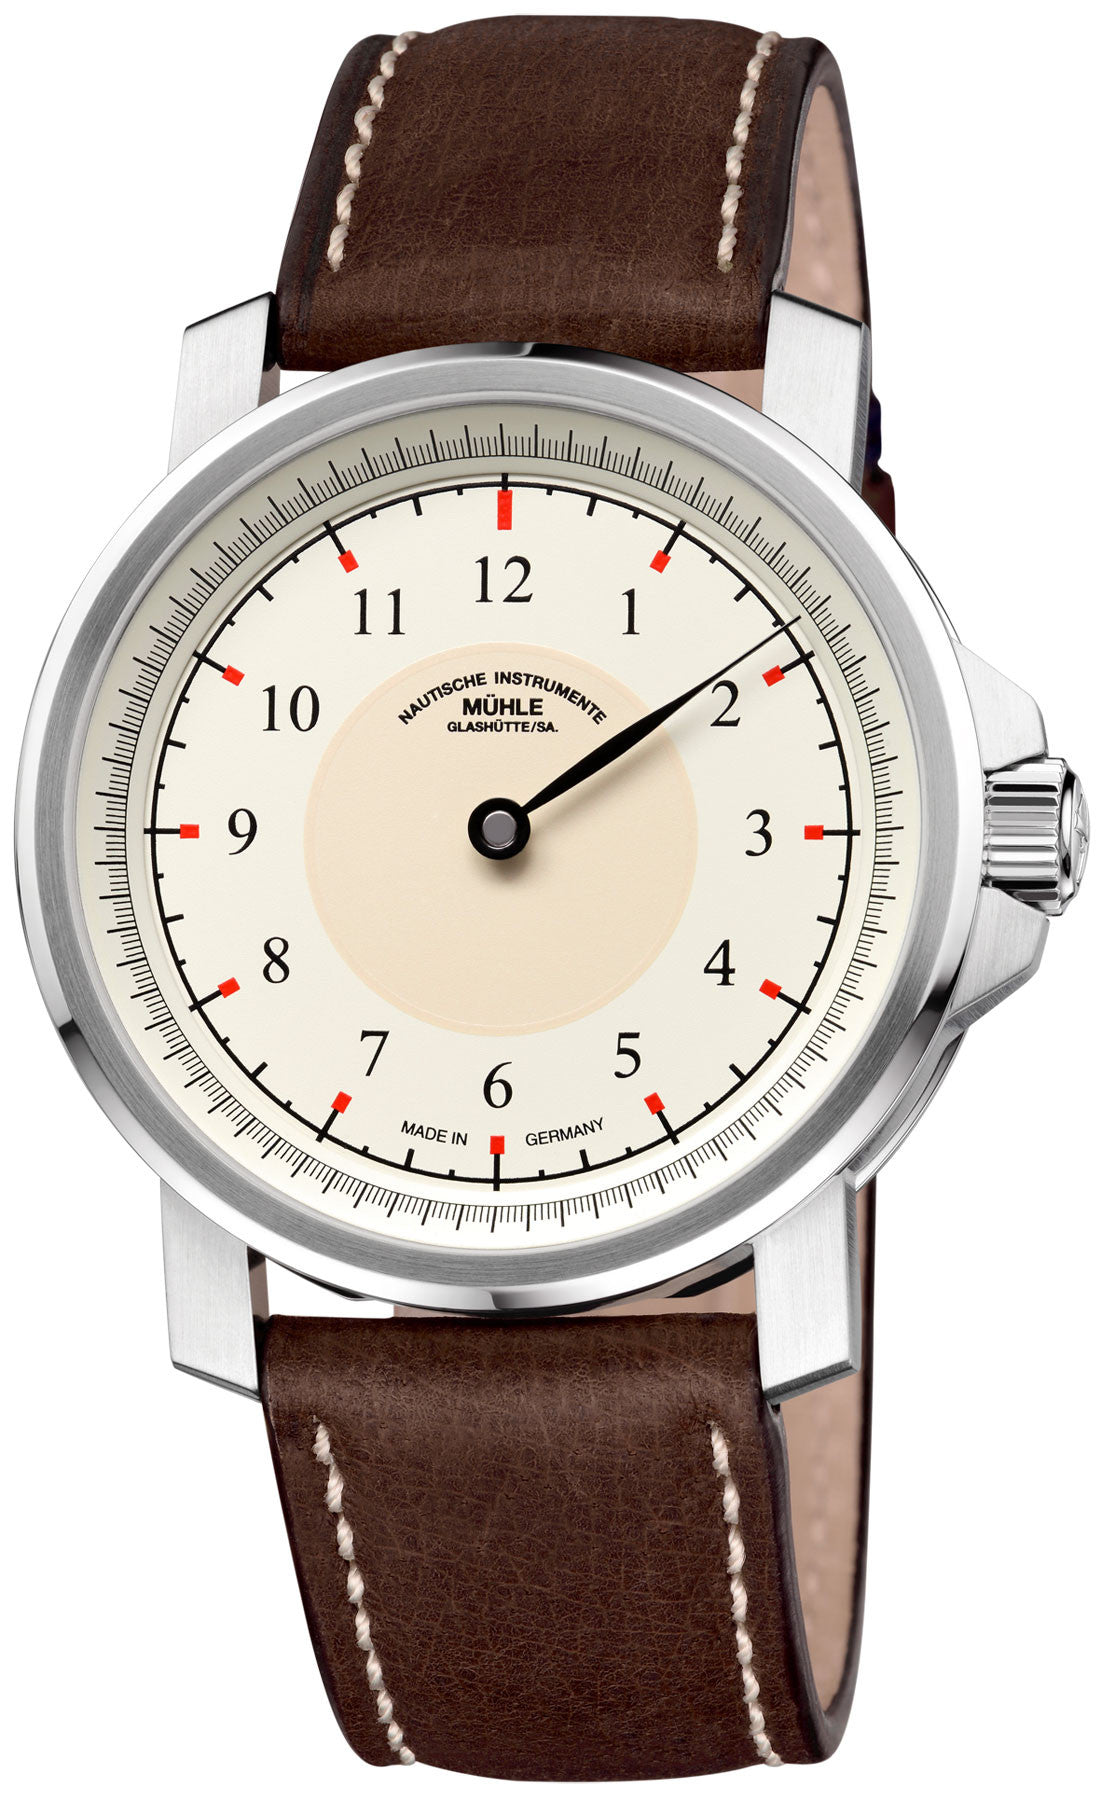 Muhle glashutte watch m 29 classic einzeiger m1 25 59 lb watch for Muhle watches